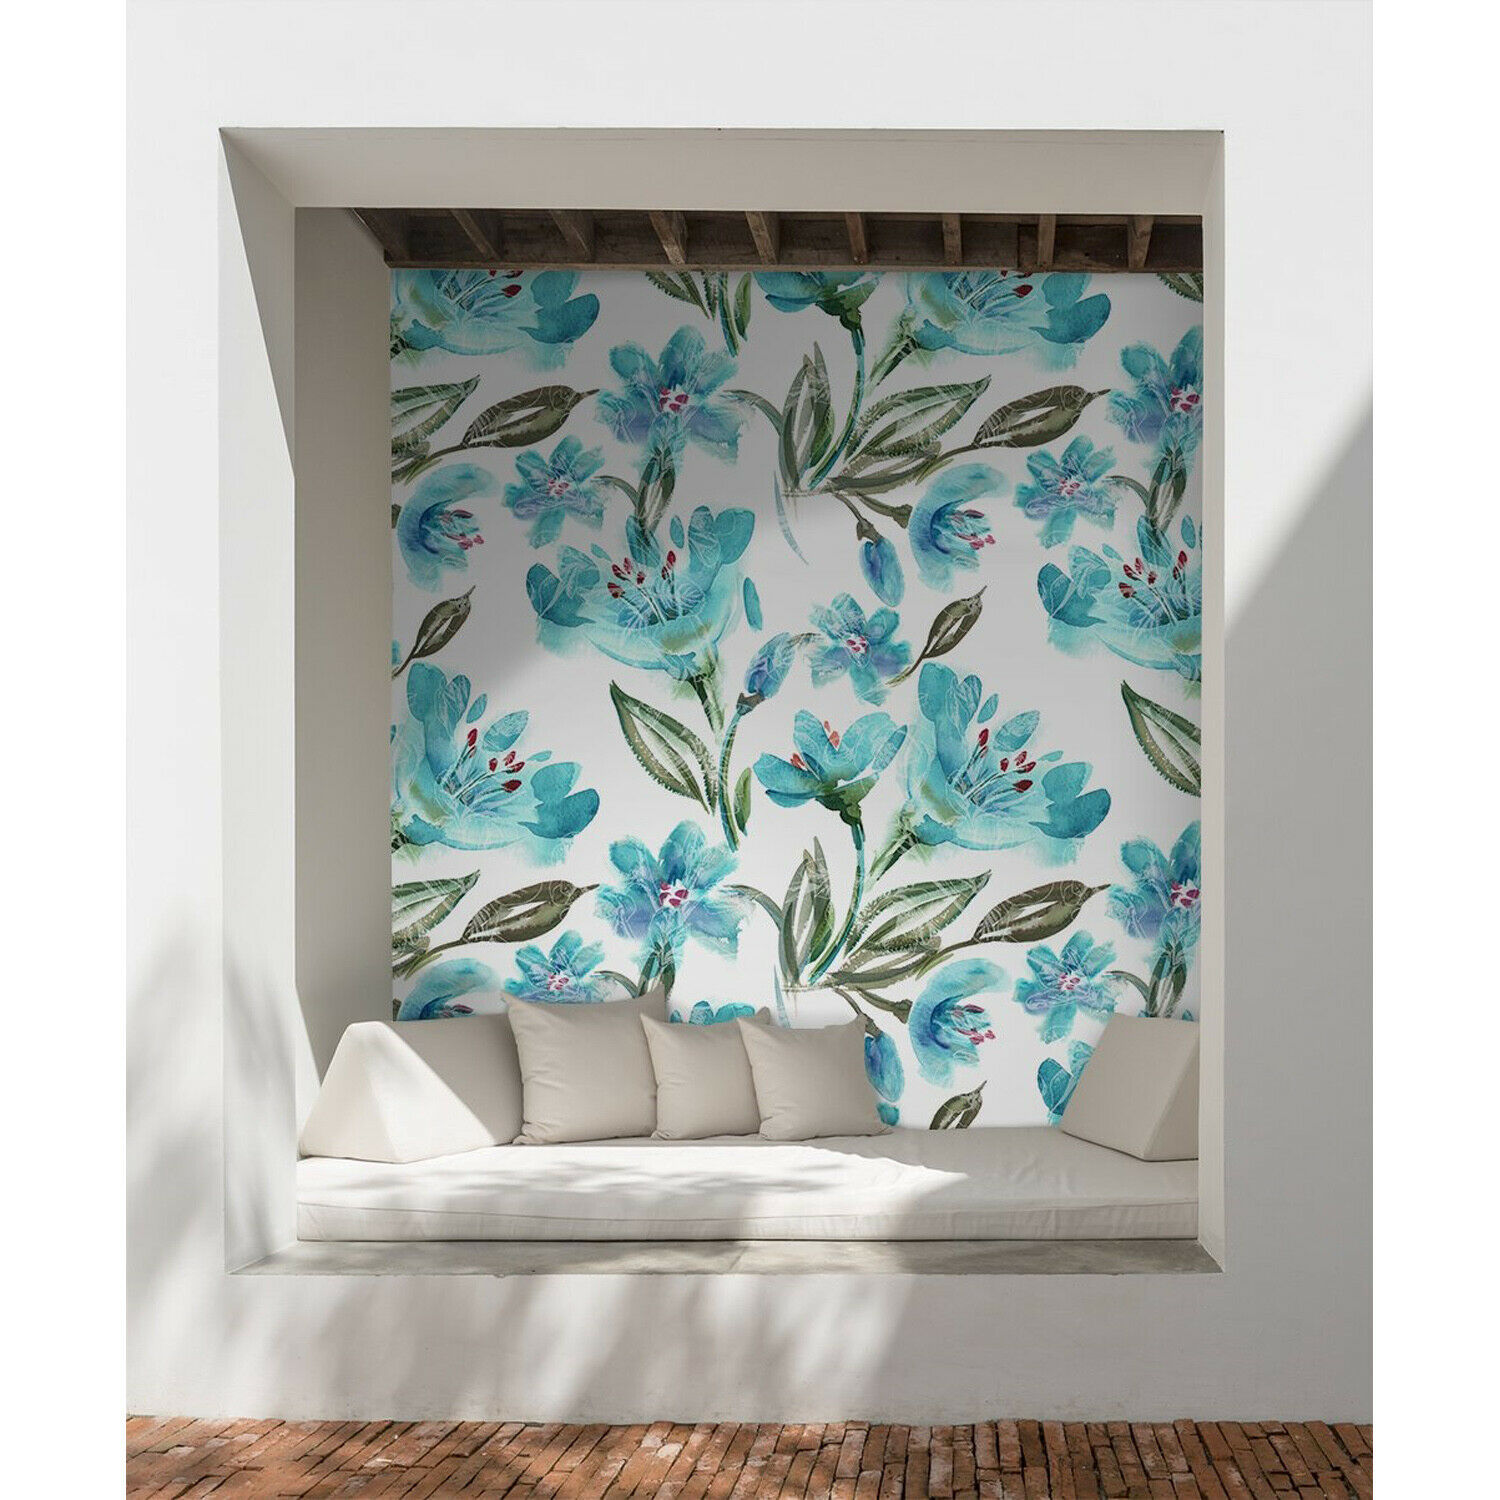 Turquoise flowers Removable wallpaper Blau and Grün wall mural temporary